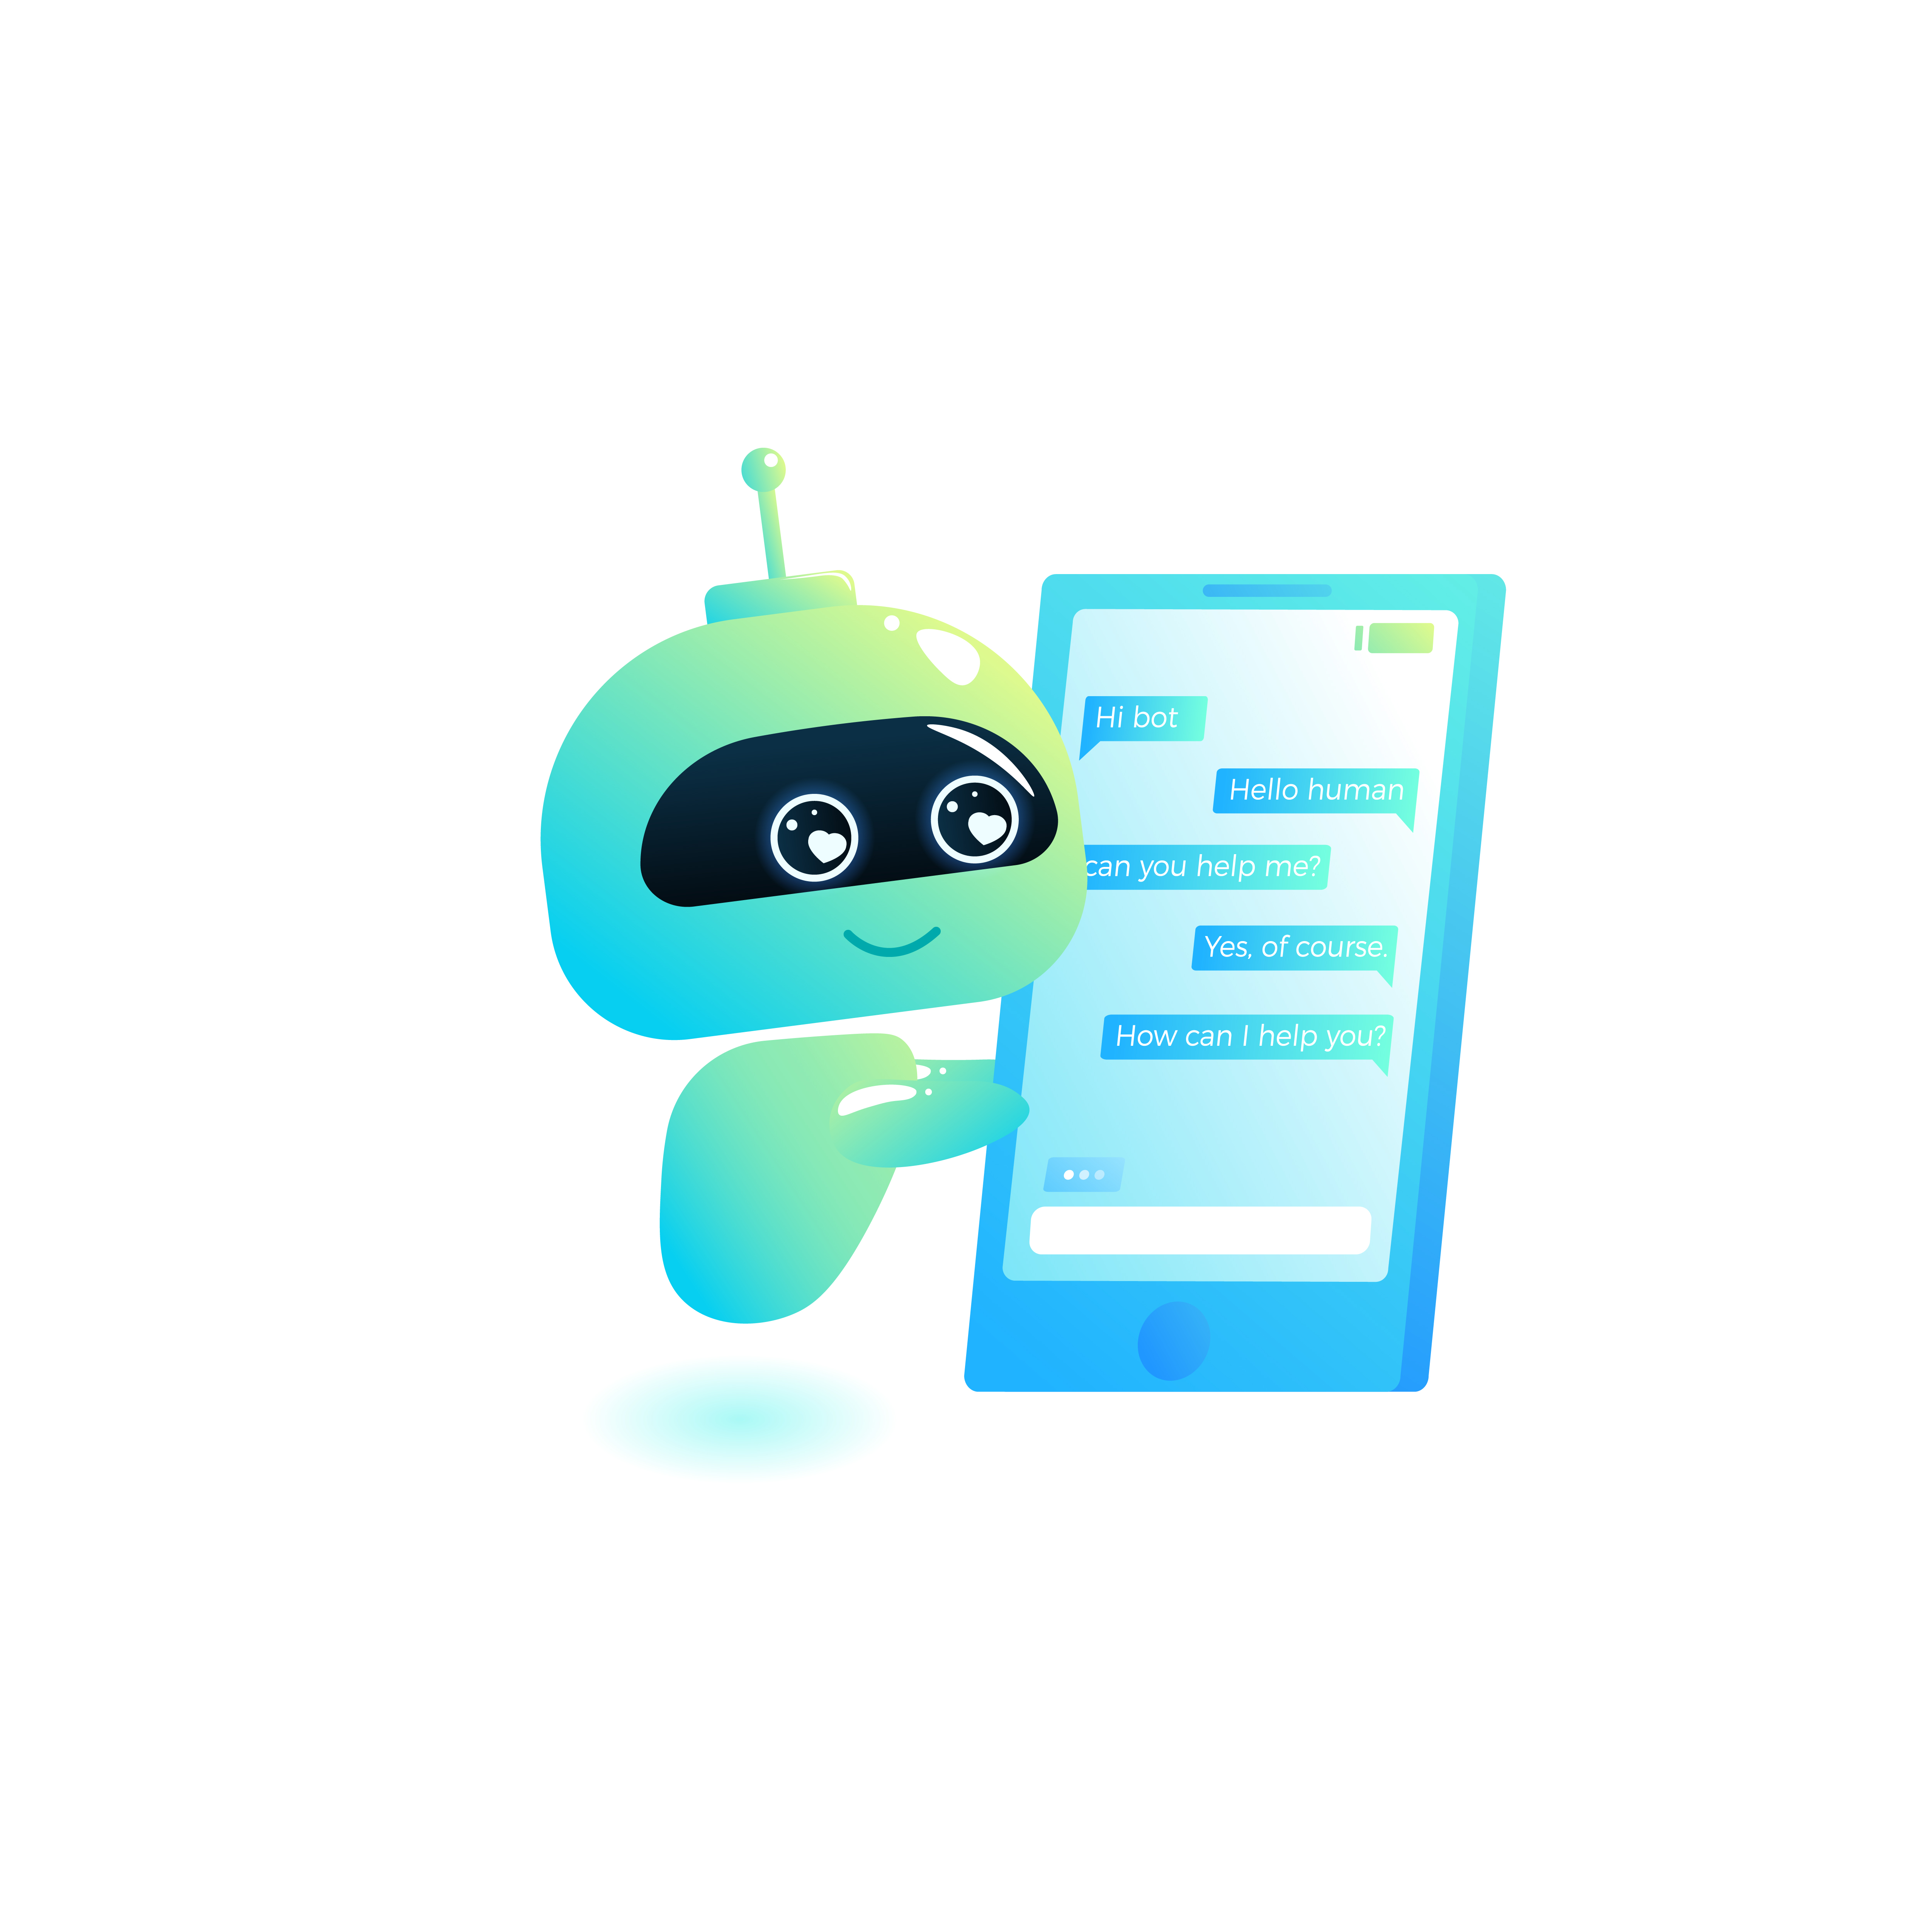 Chatbot write answer to messages in the chat. Bot